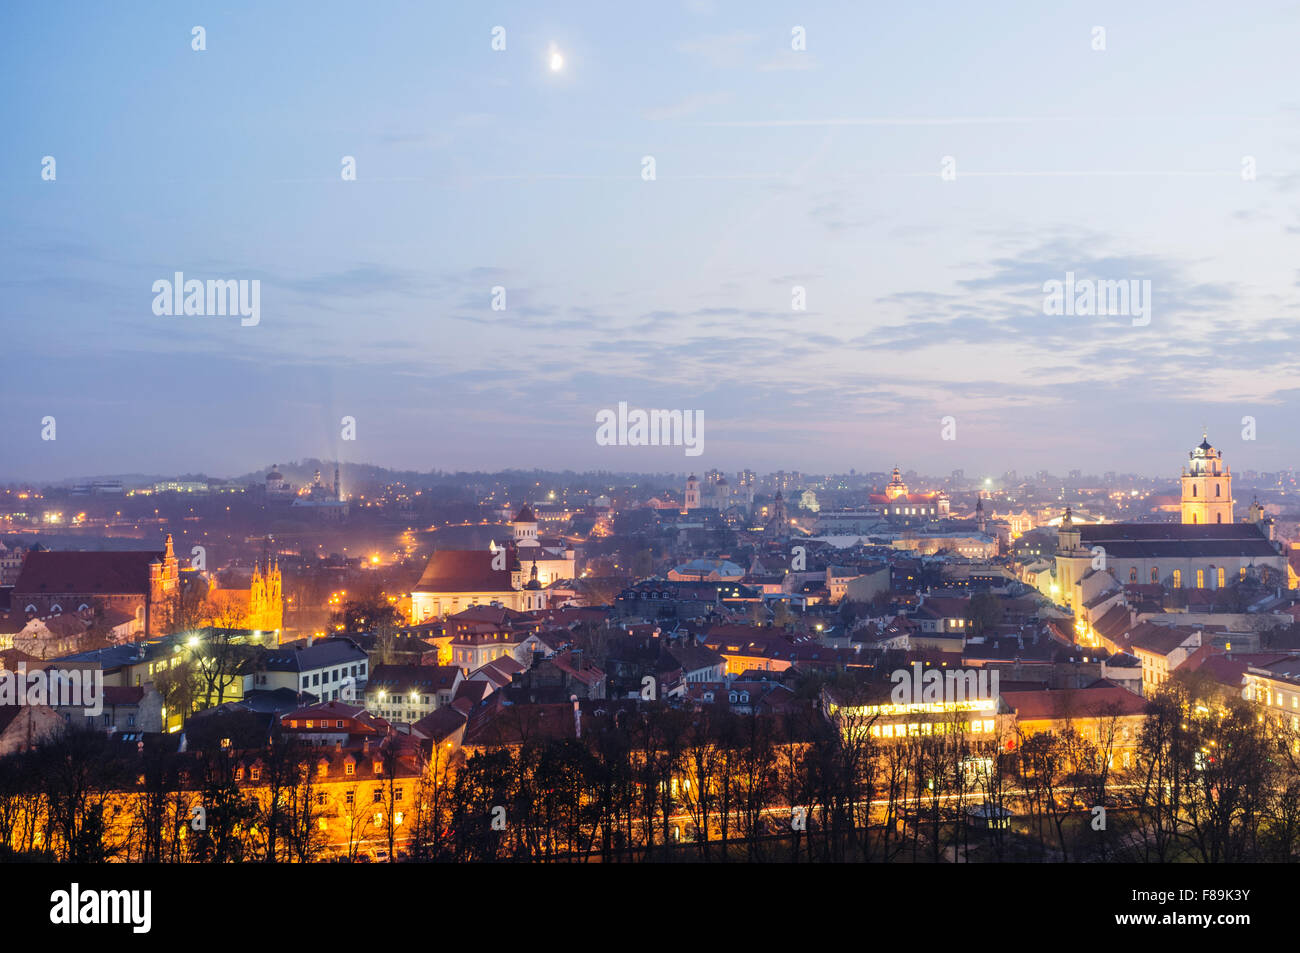 Old town overview at night. Vilnius, Lithuania, Europe - Stock Image